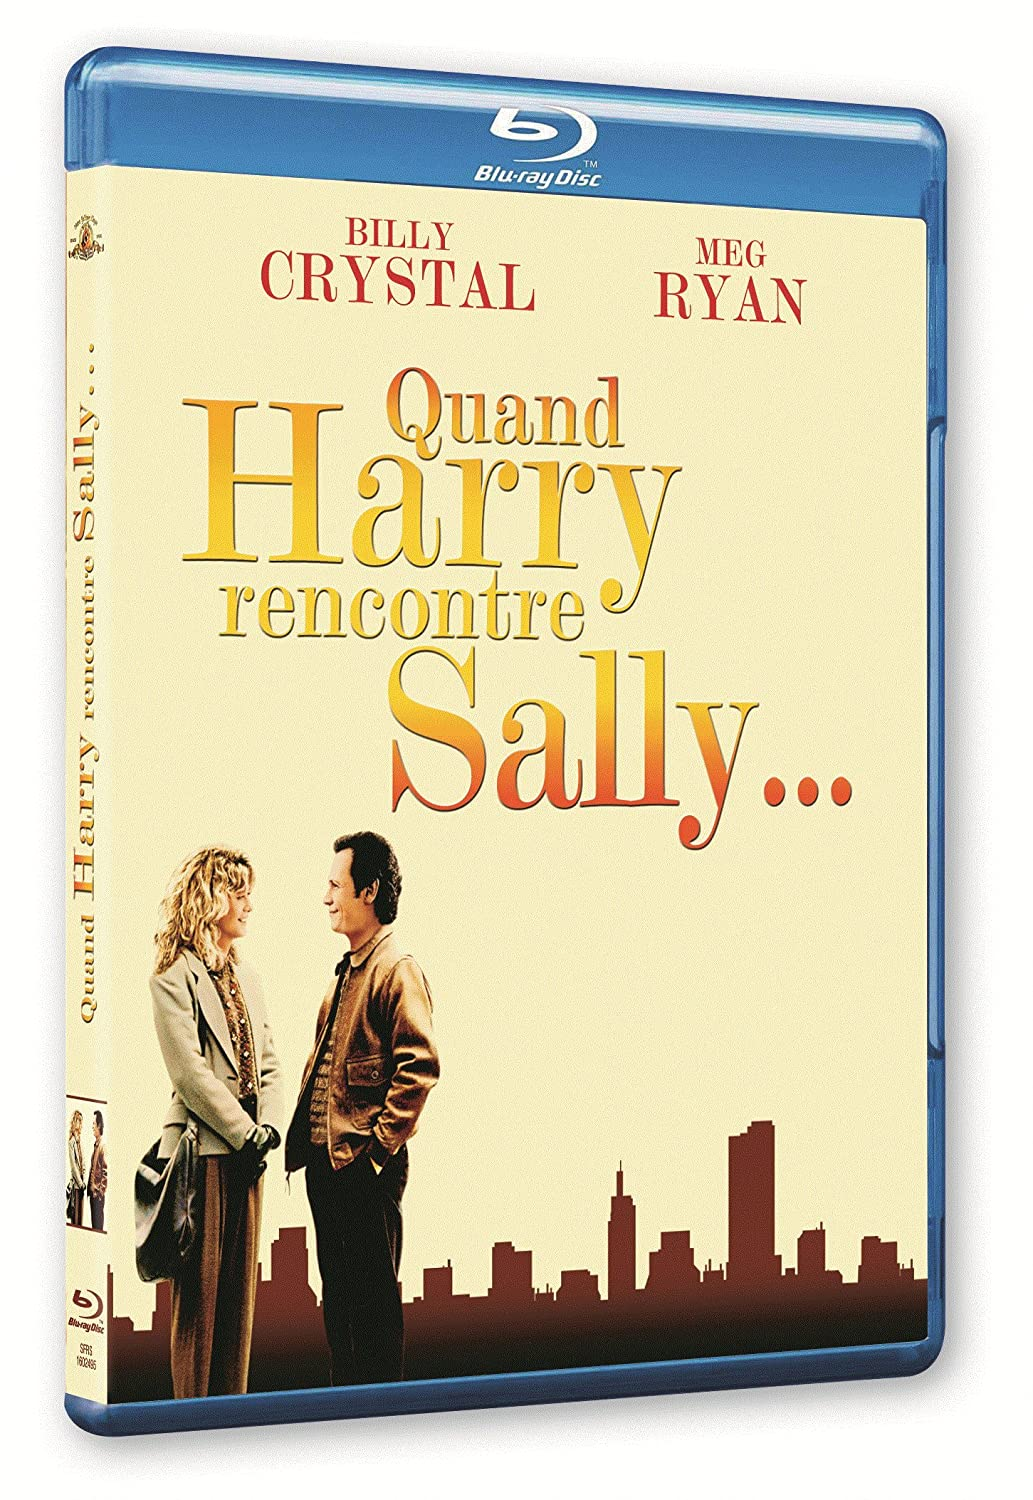 Telecharger quand harry rencontre sally vostfr